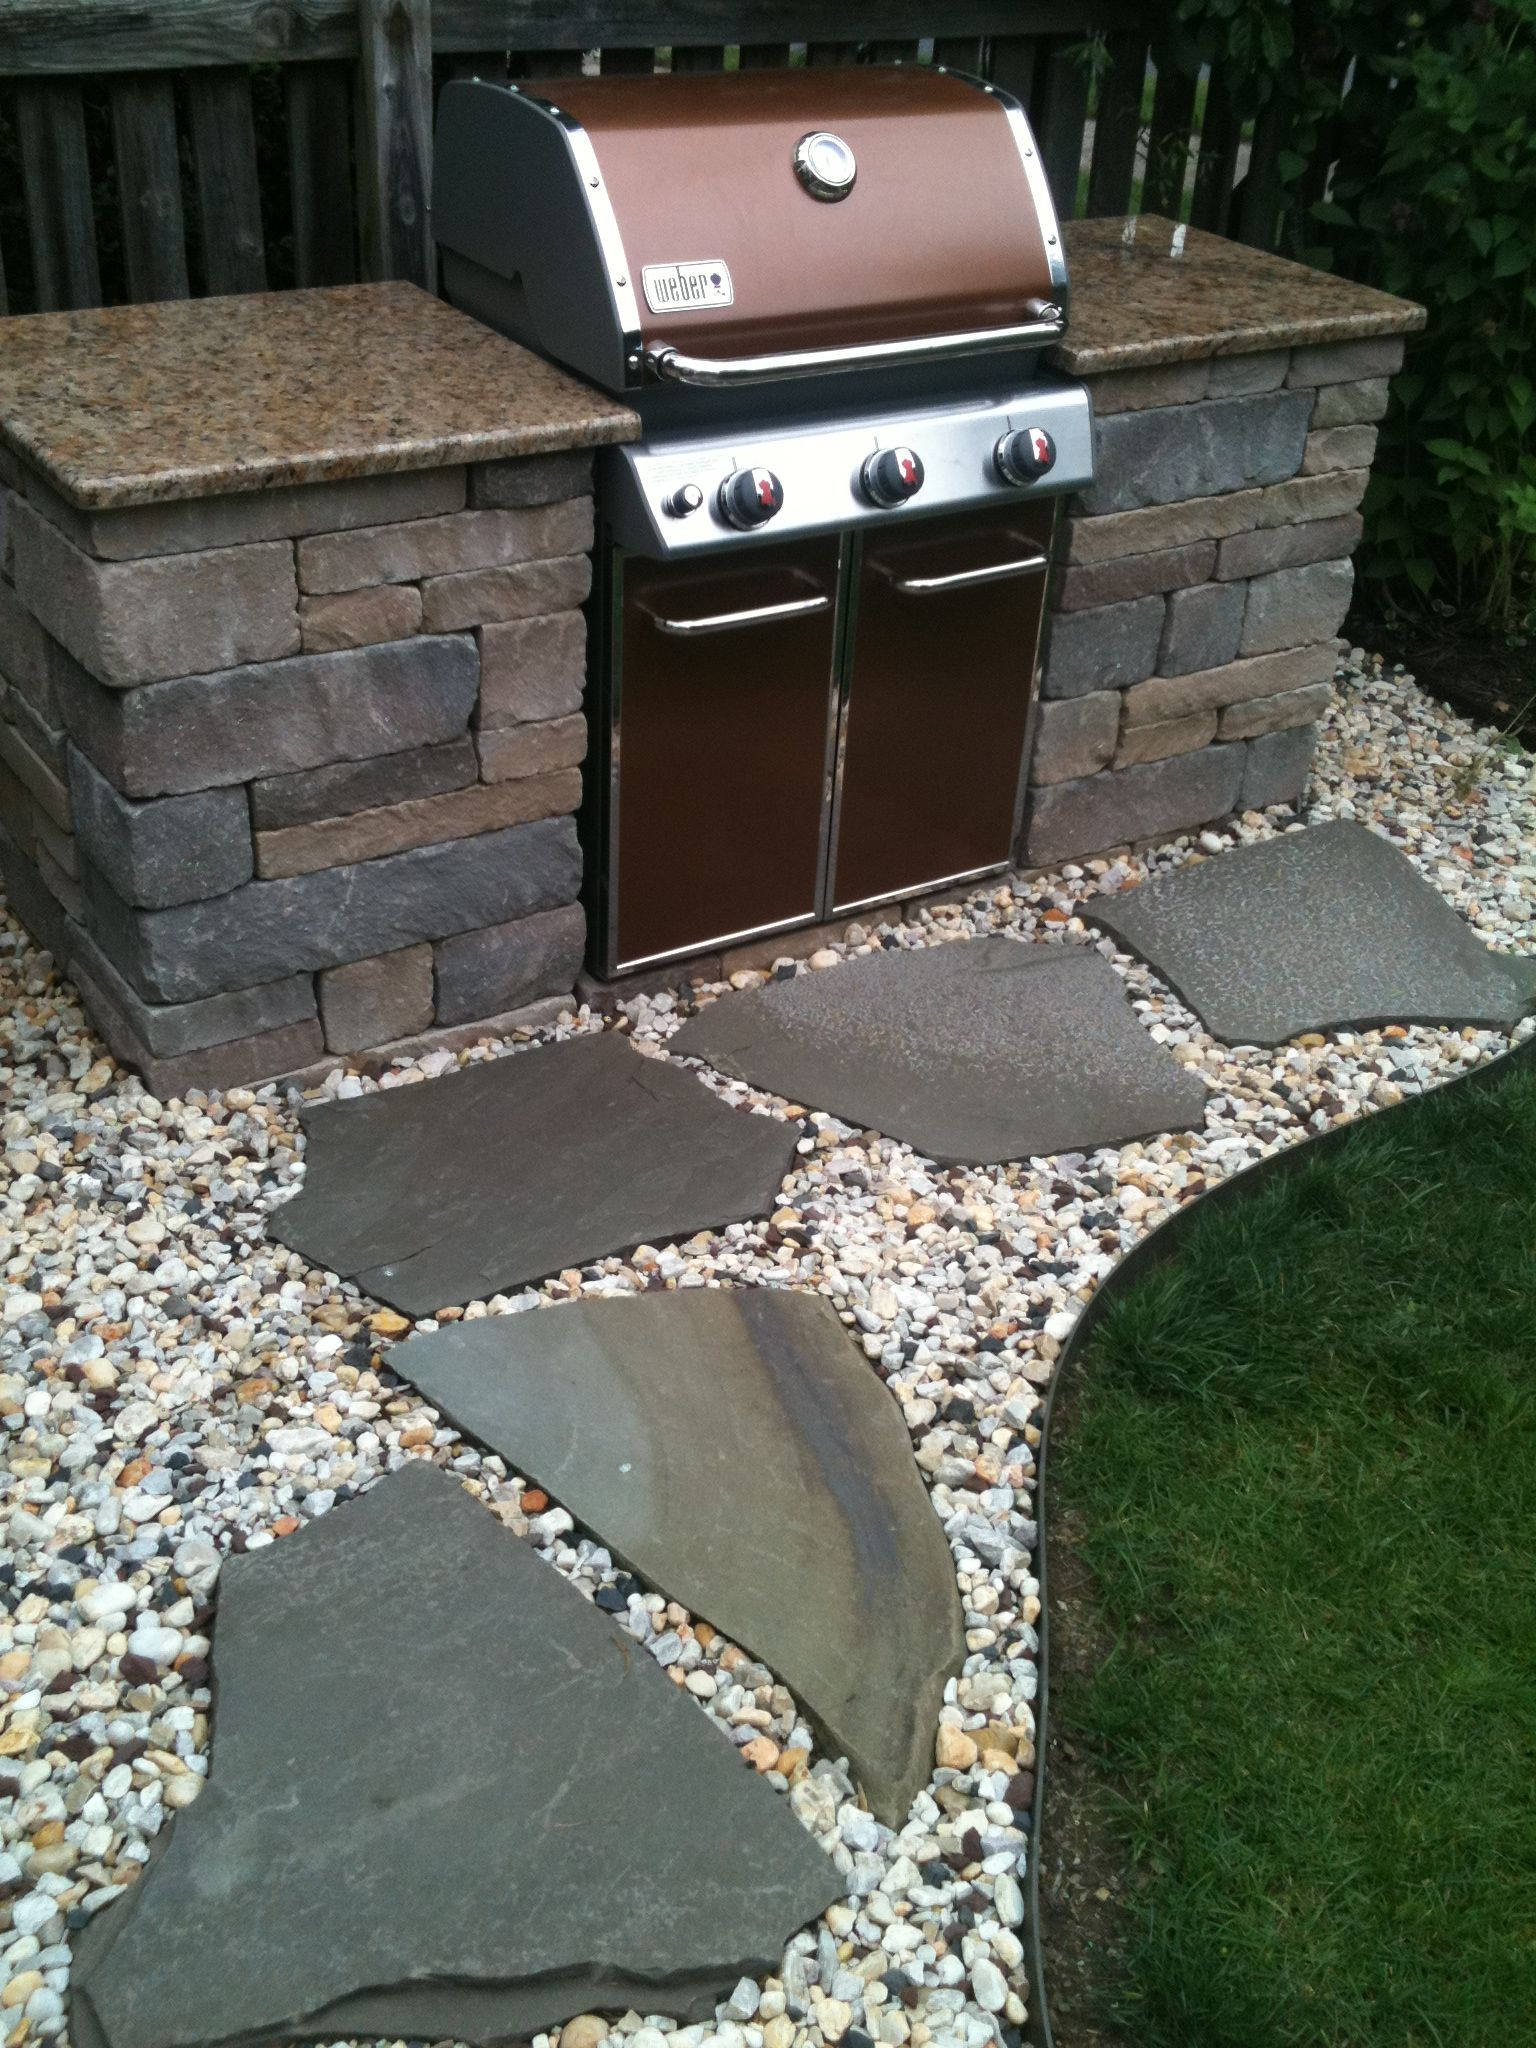 Custom Built Grill With Beautiful Countertops Outdoor Grill Area Backyard Grill Ideas Outdoor Grill Station